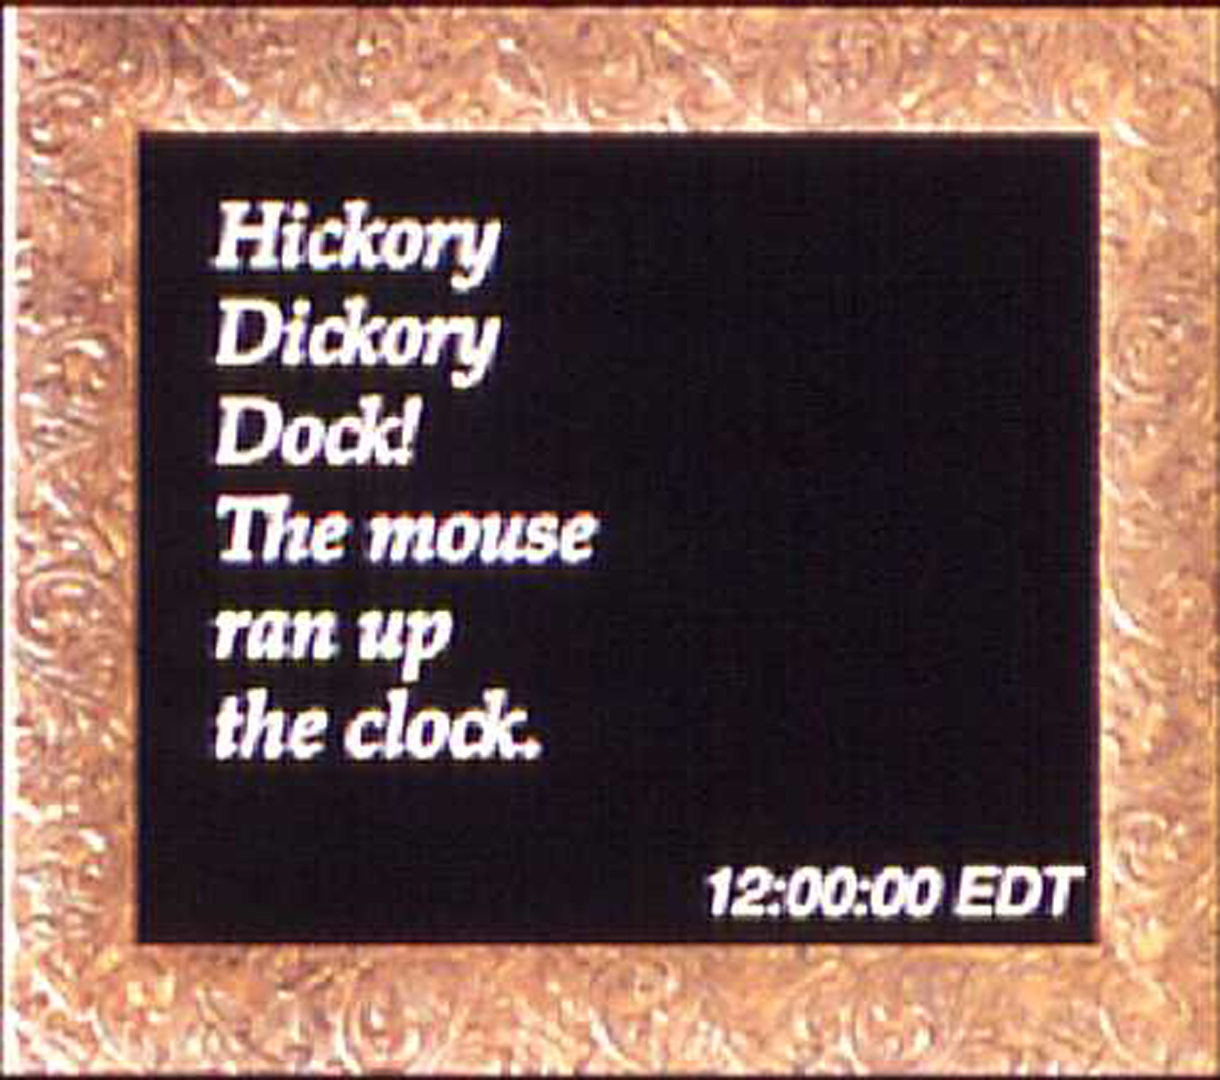 ©, Patricia Search, Hickory Dickory Dock: The Clock Strikes One in Hyperspace!